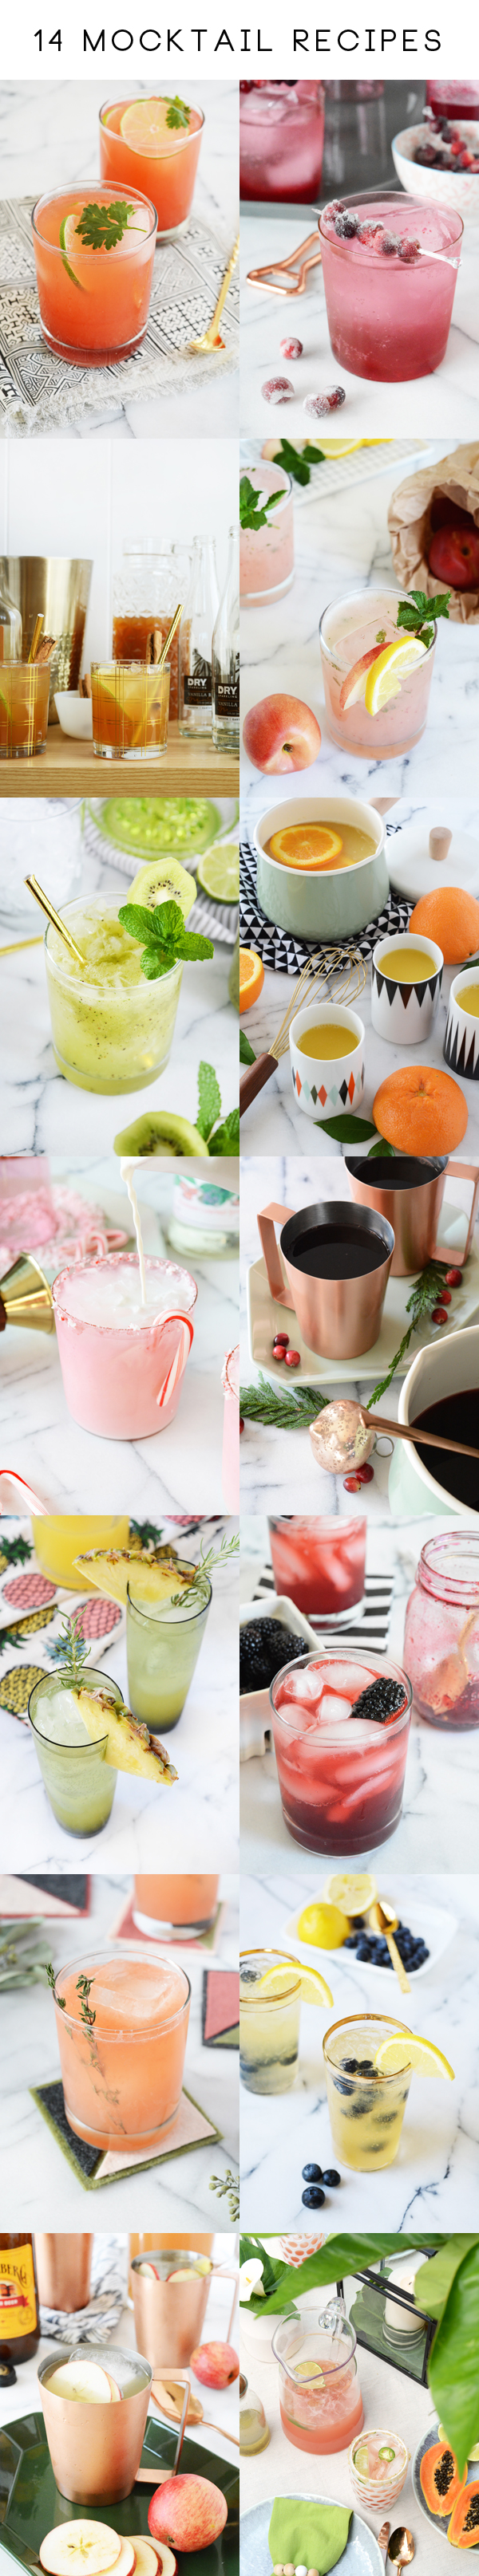 14 Mocktail Recipes - fun drinks the whole family can enjoy.